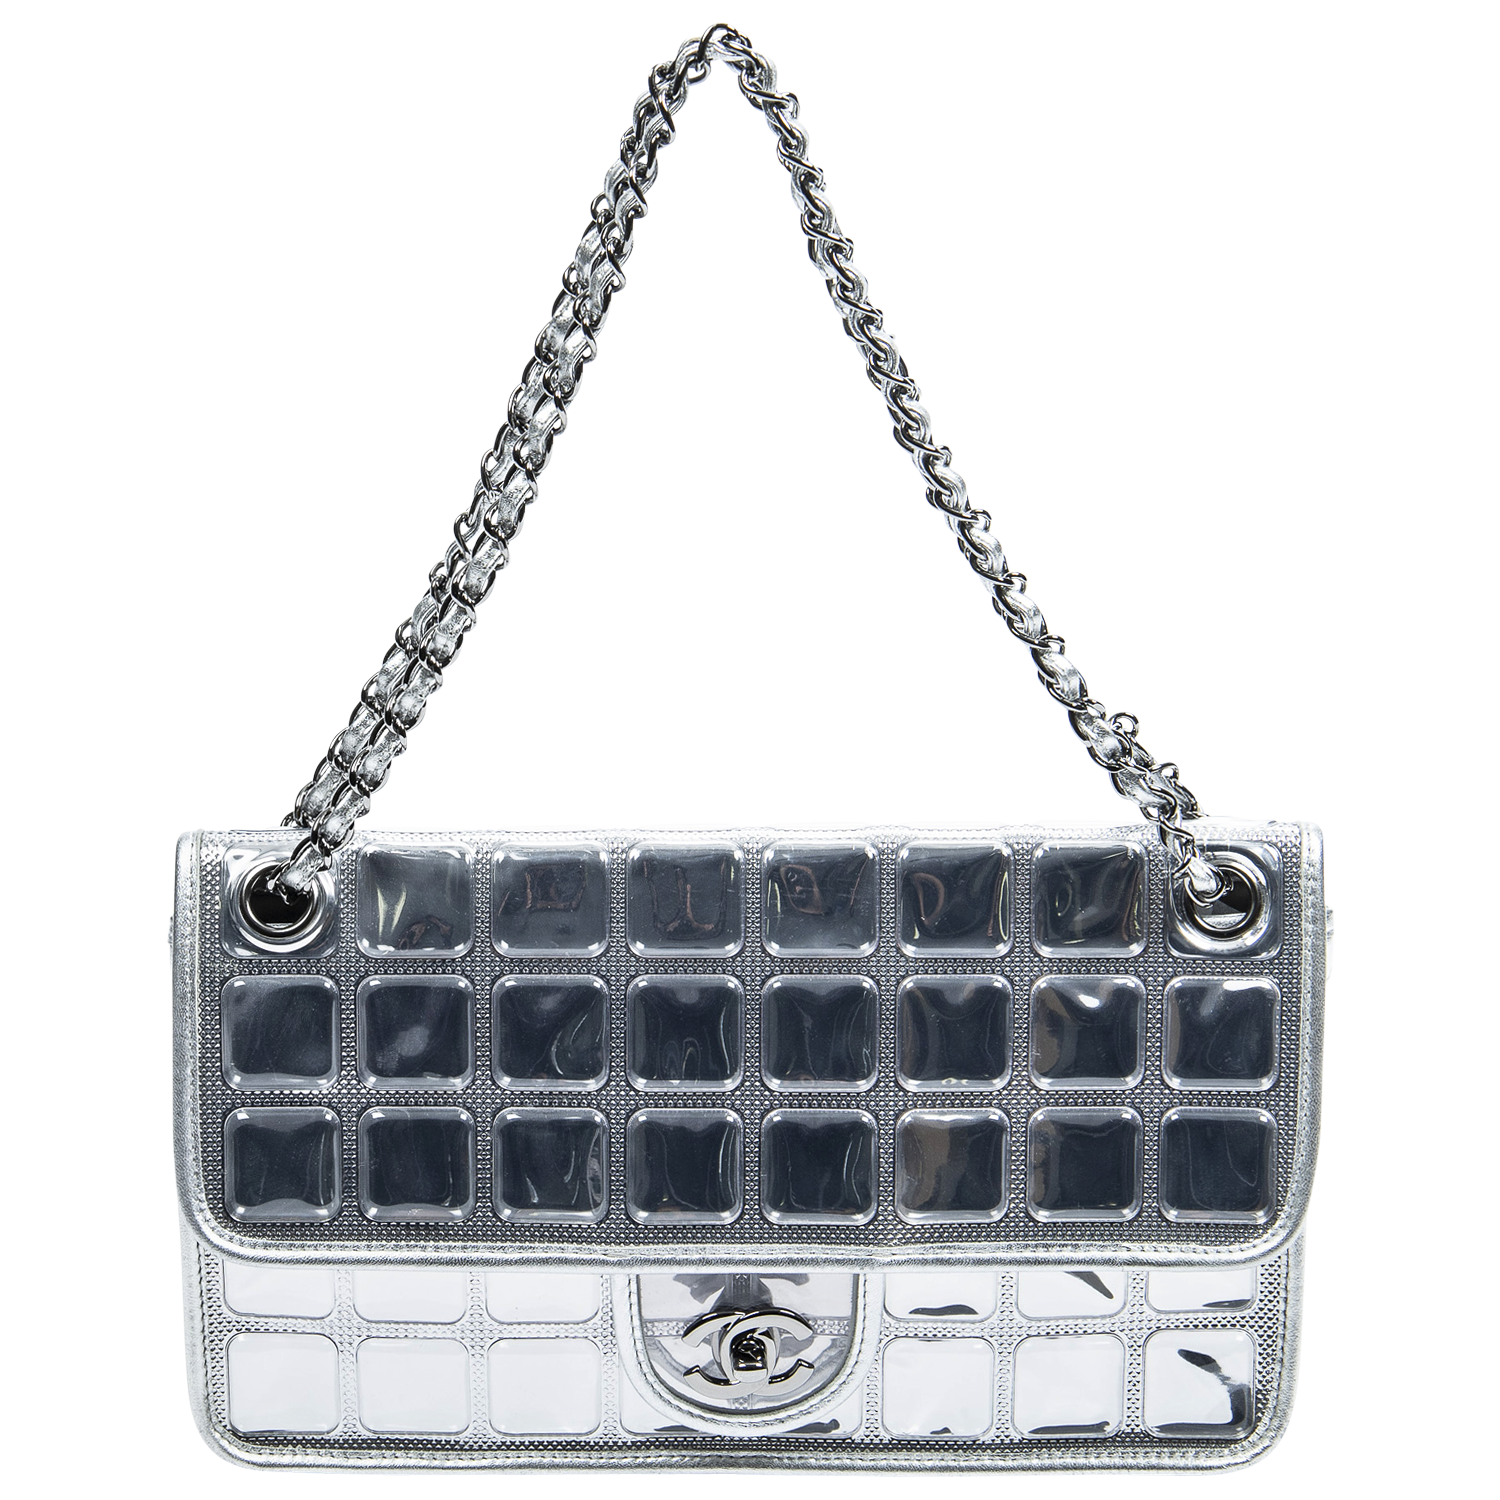 Chanel Limited Edition 2008 Resort Ice Cube Flap Bag